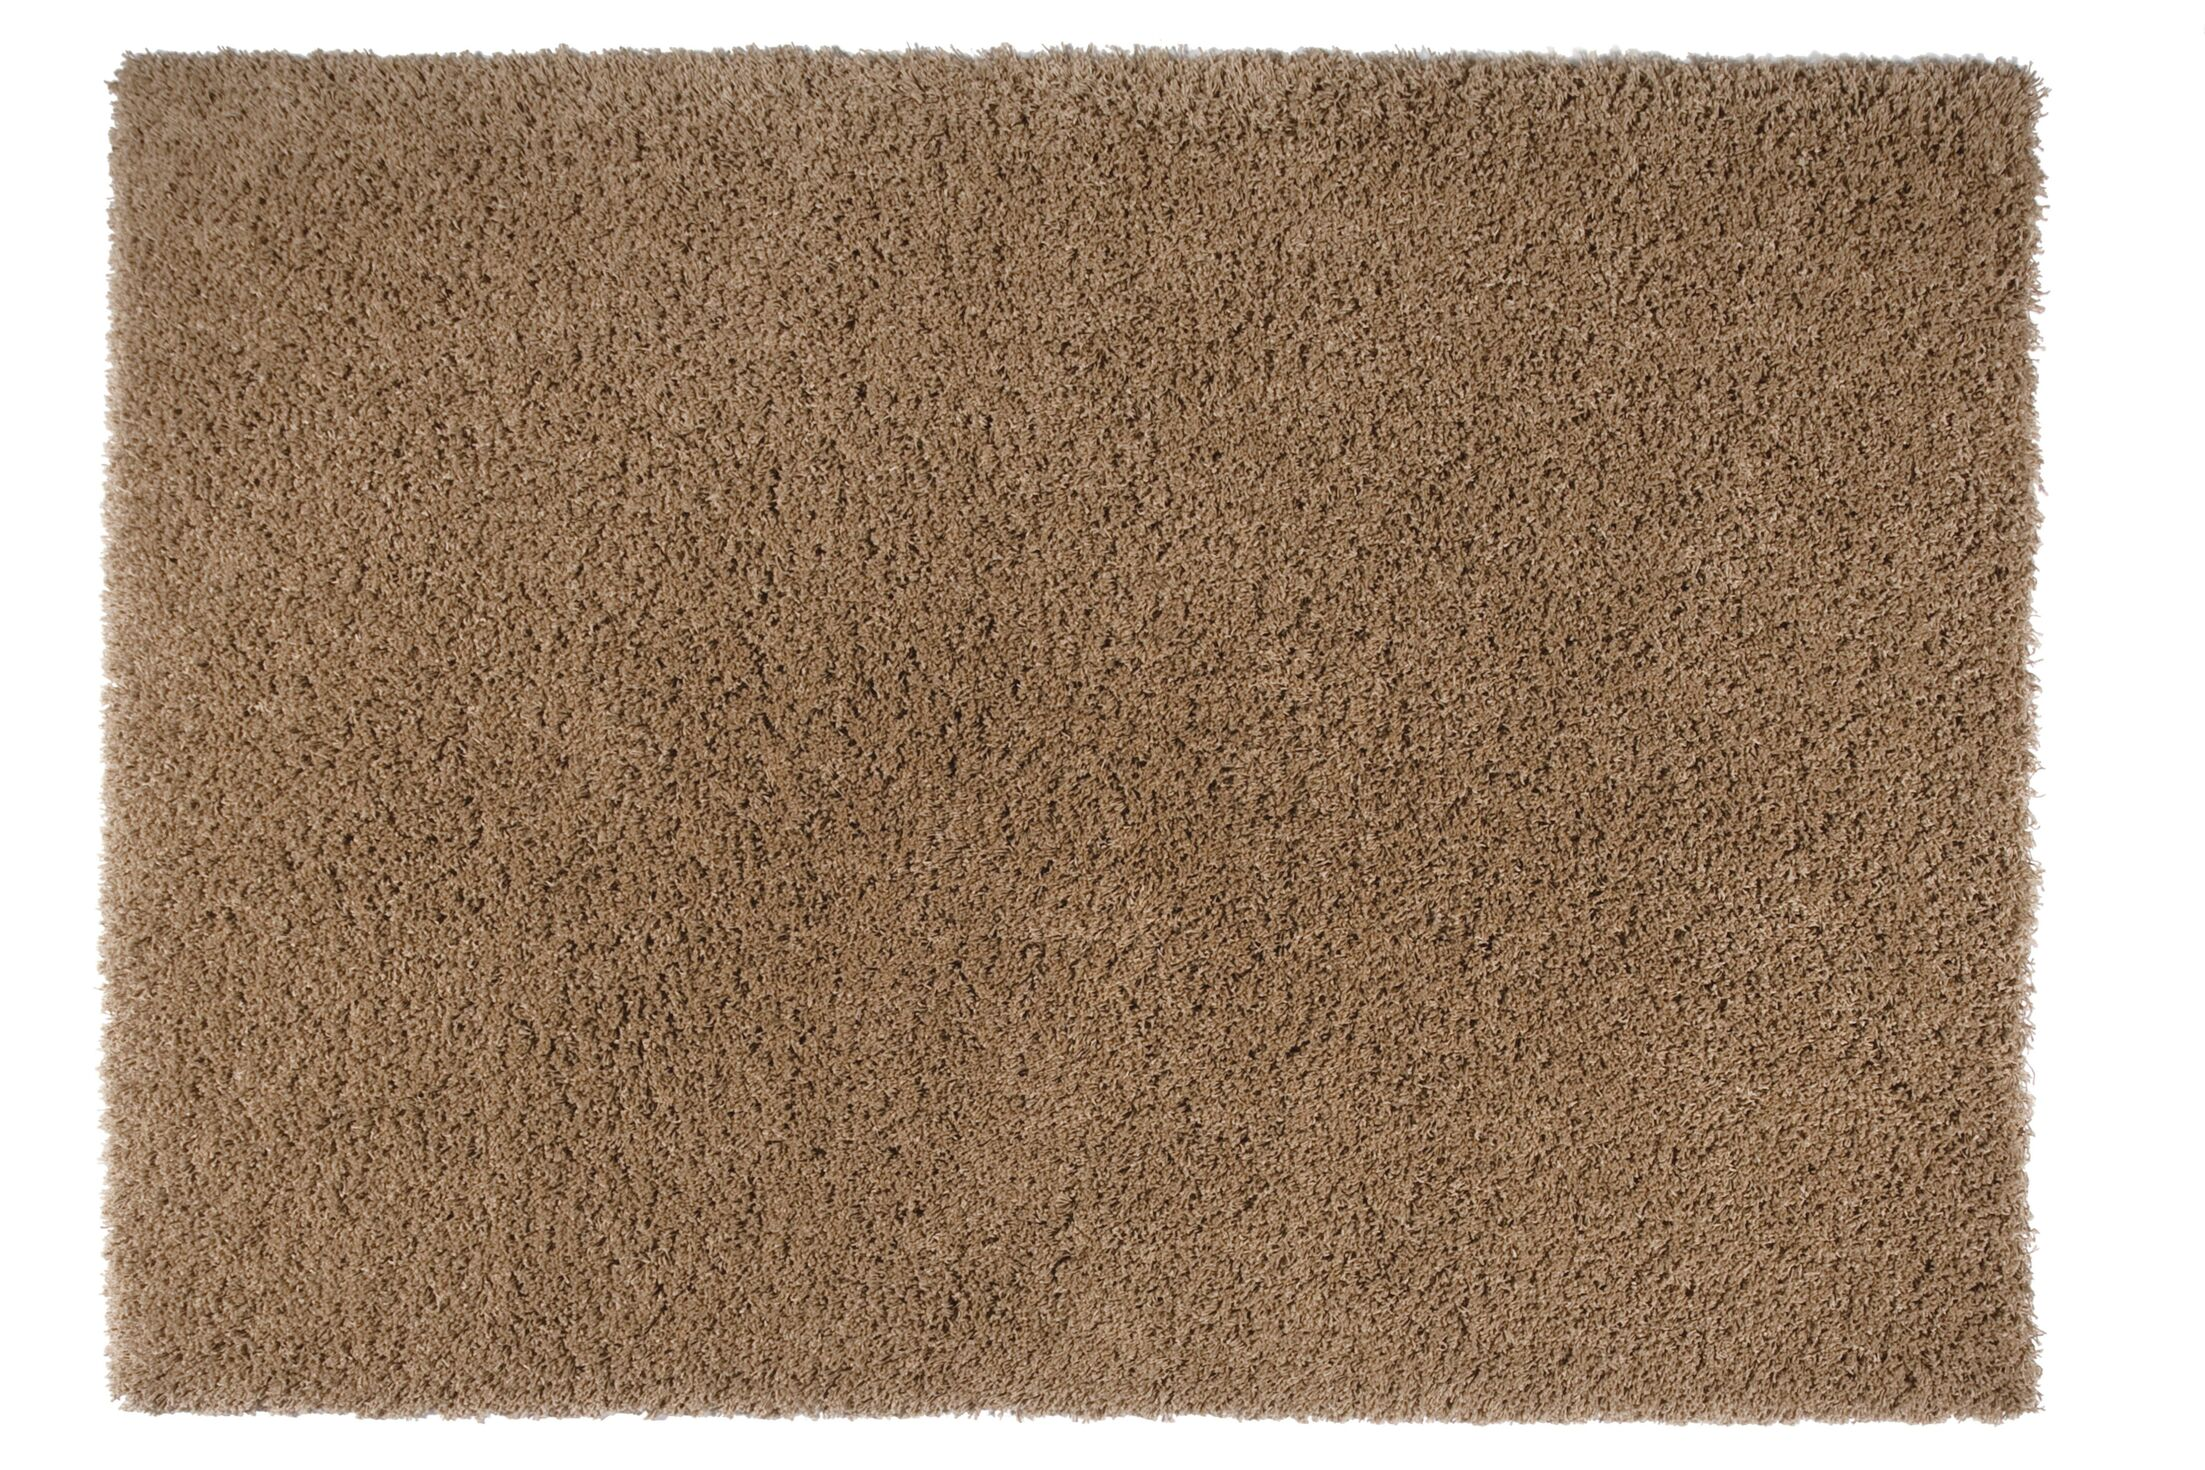 Loft Brown Area Rug Rug Size: Rectangle 6'7